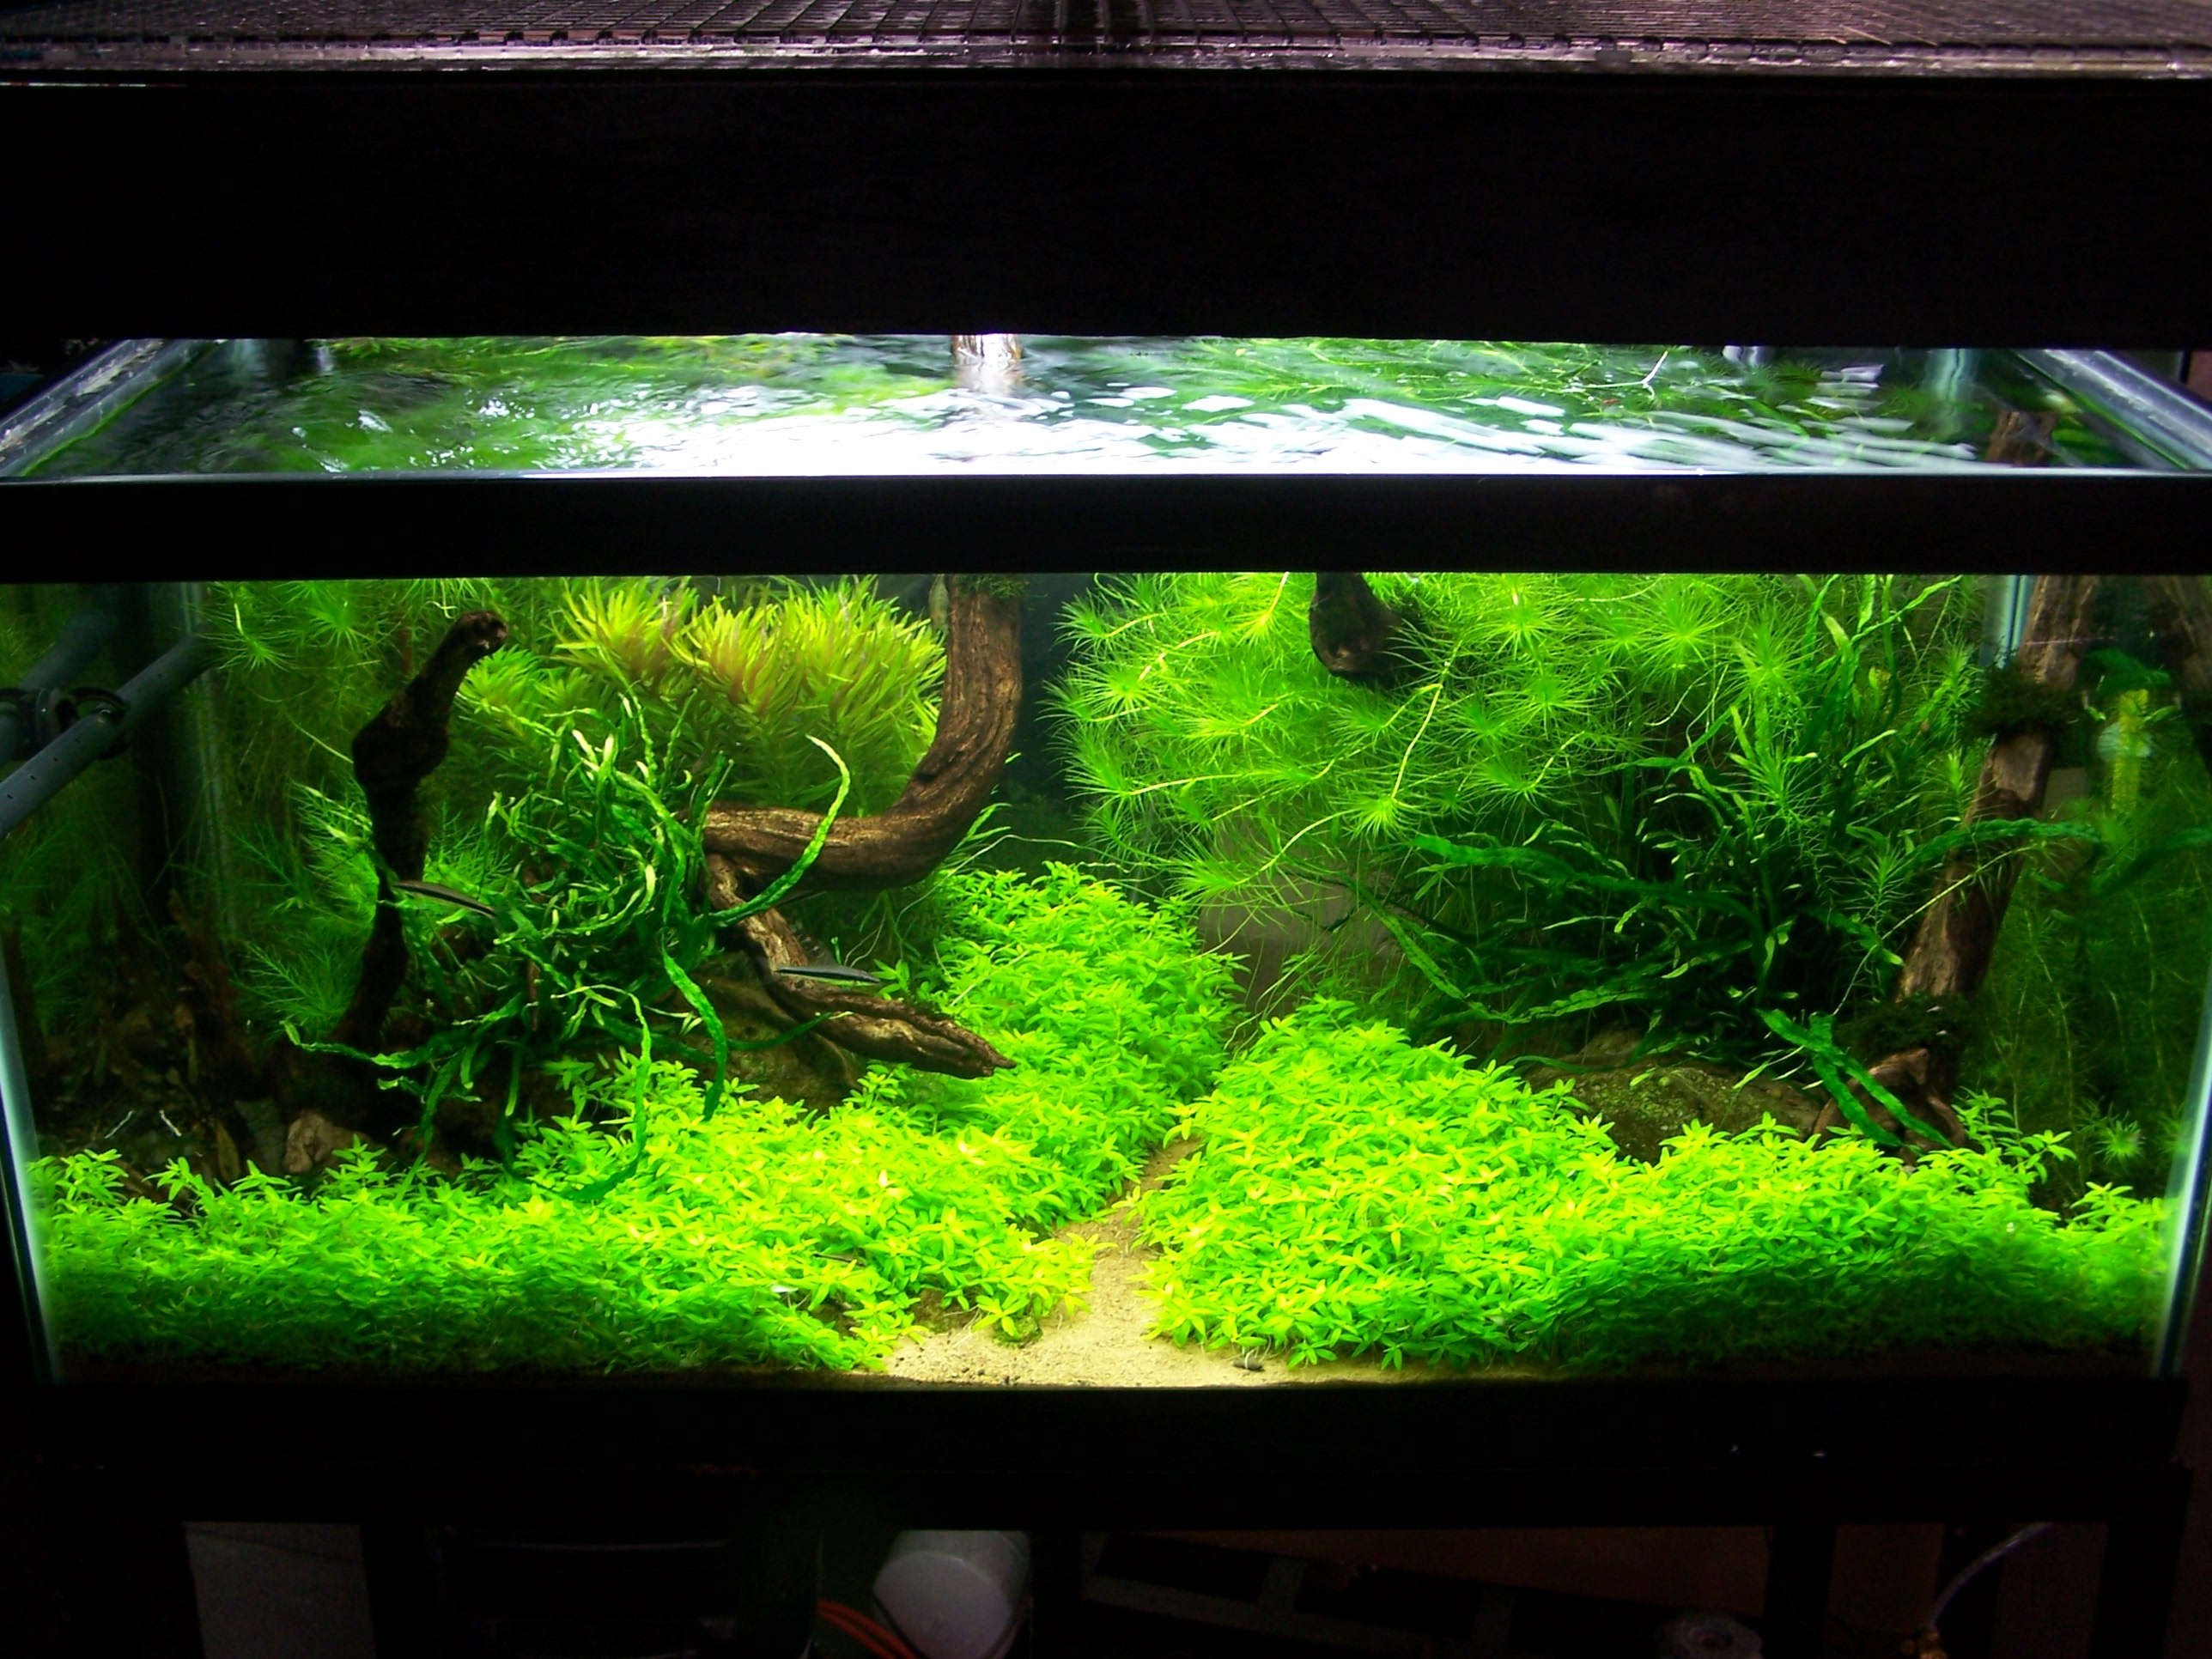 AquascapeDisgn